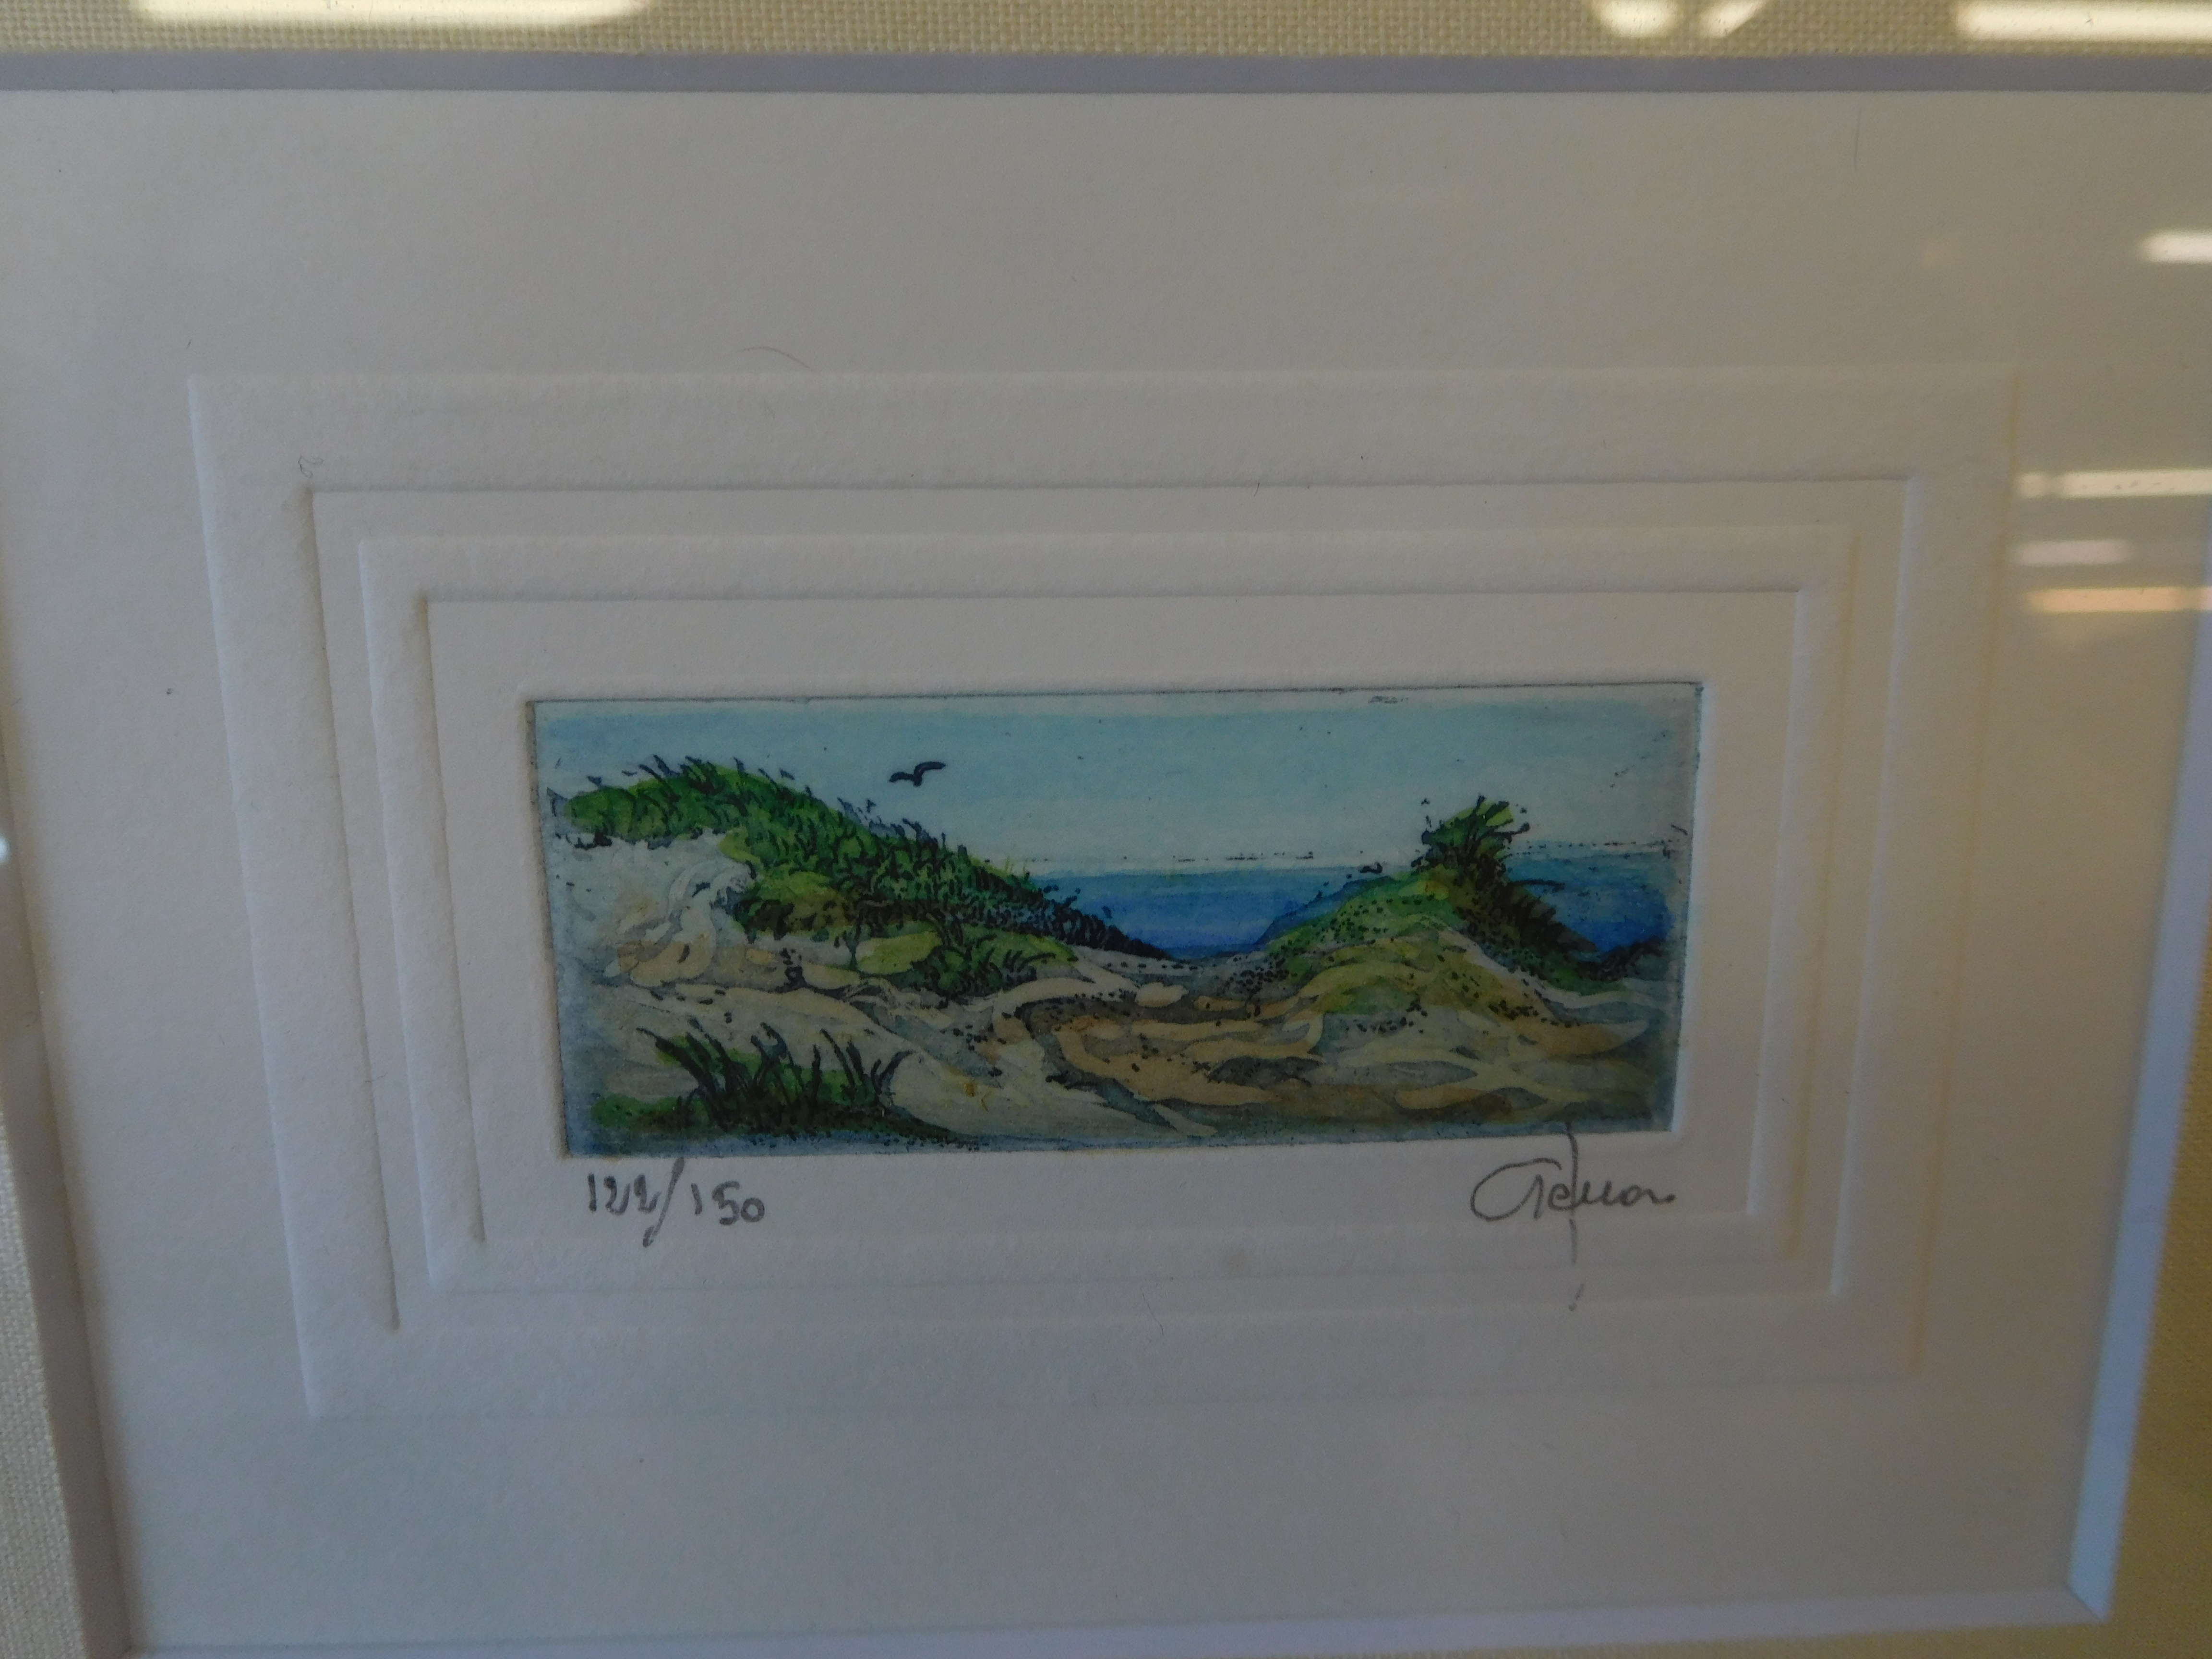 Original Signed and Numbered Seascape Etching by